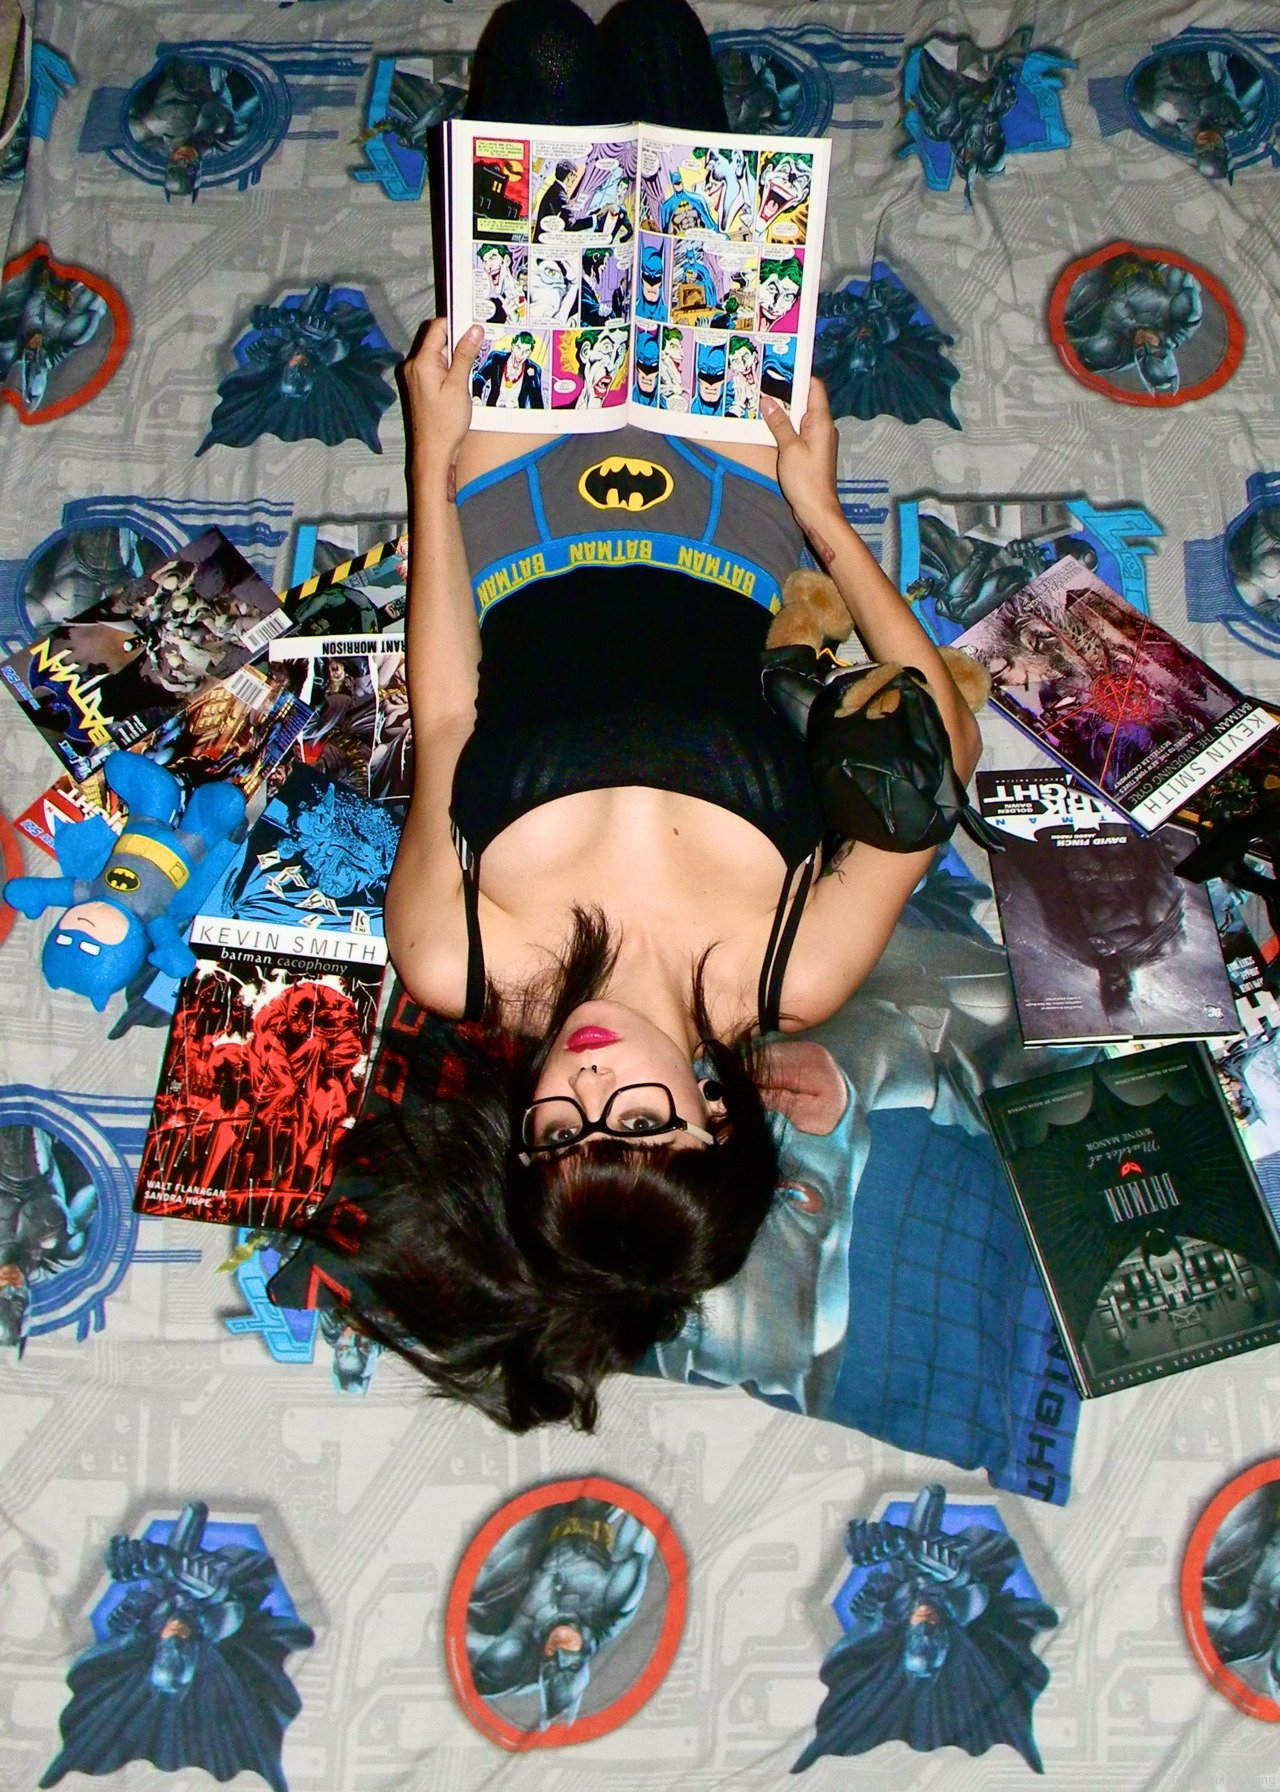 Nerdy Underwear + Hot girls = Overload!